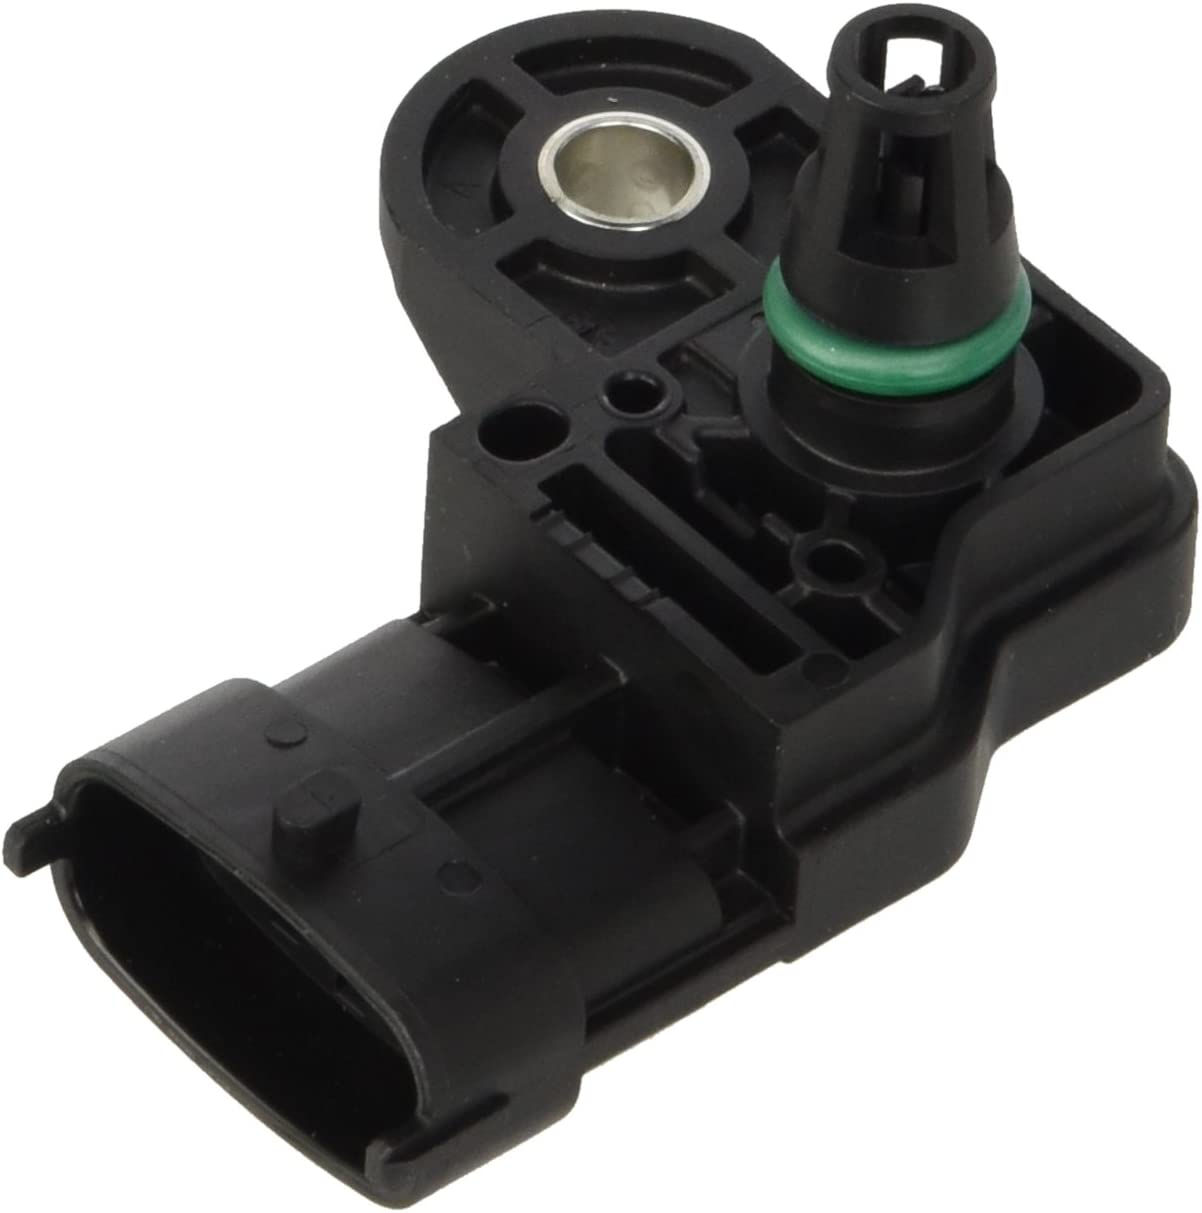 BOSCH Intake Manifold Boost Pressure with Max 46% OFF compatible MAP Price reduction Sensor